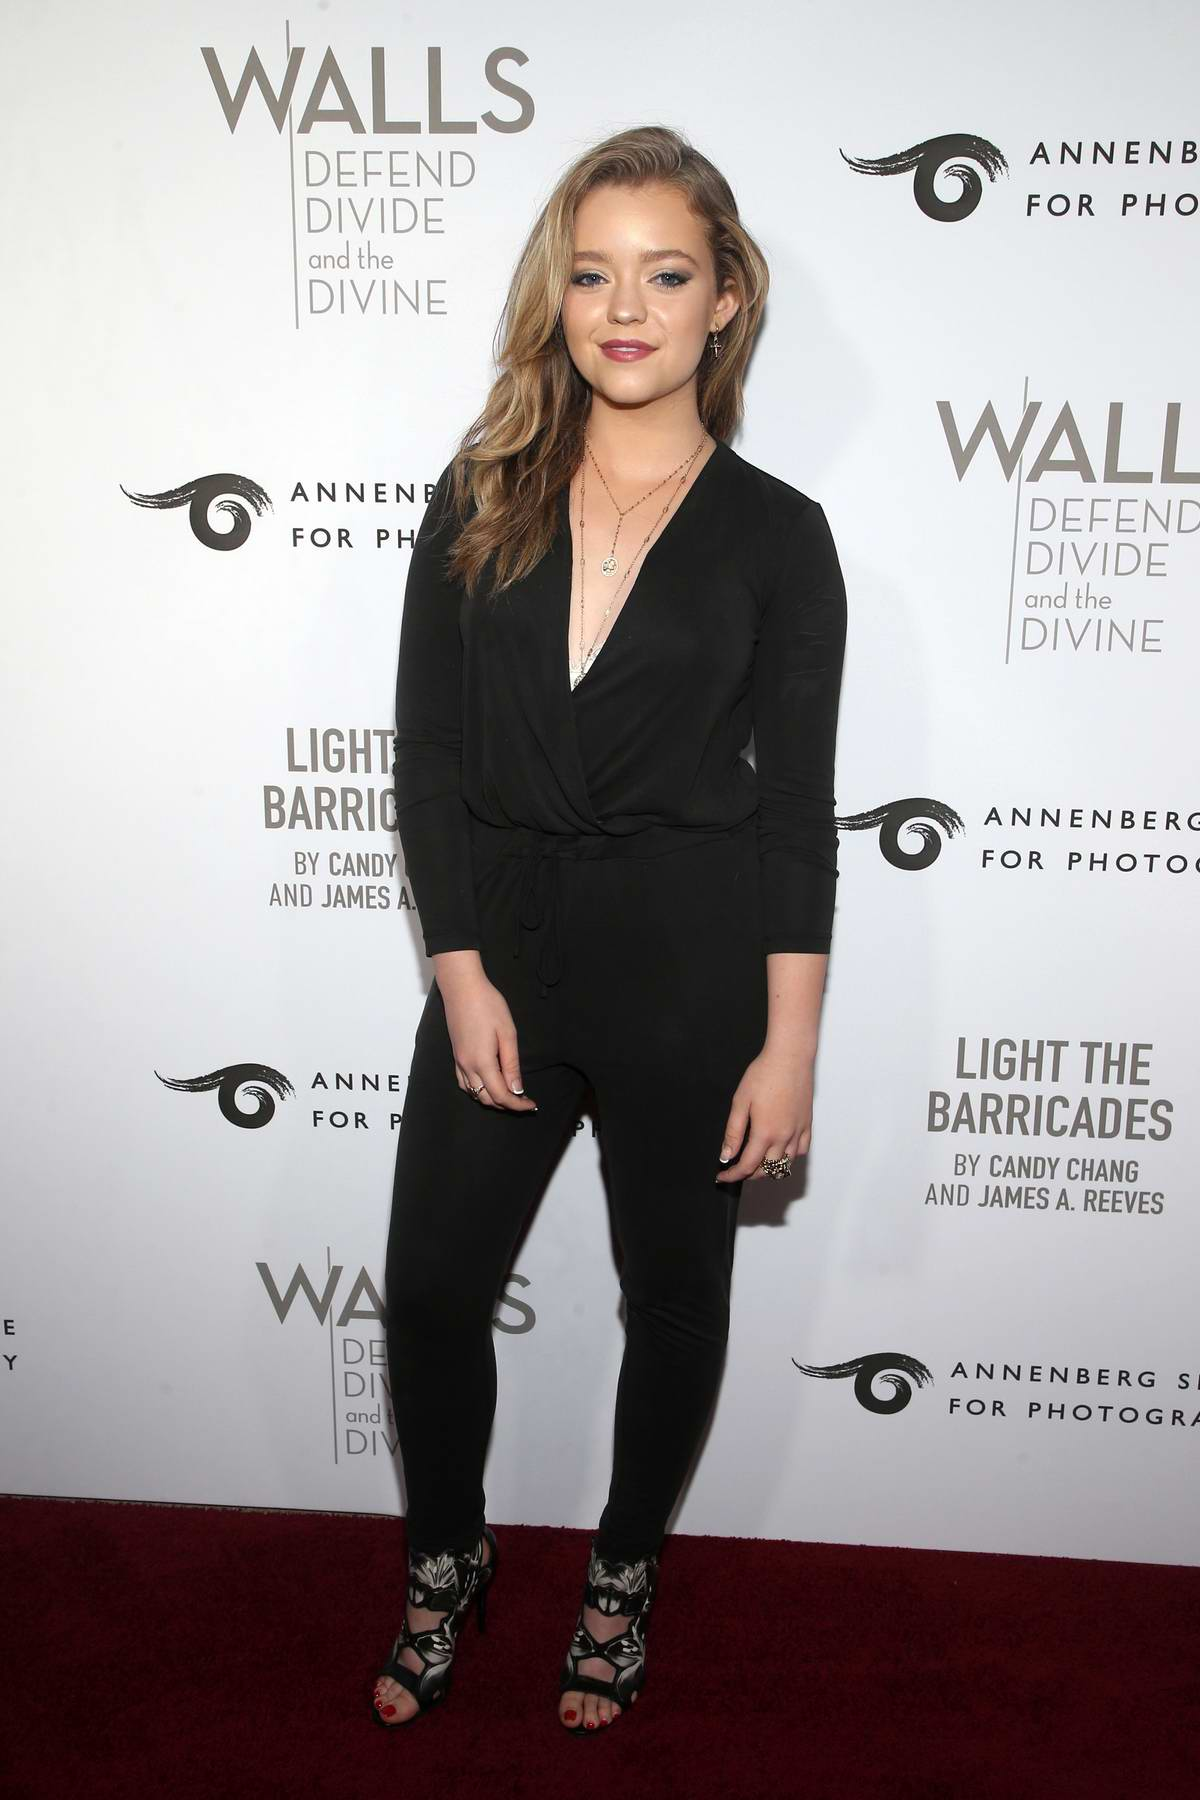 Jade Pettyjohn attends the Annenberg Space For Photography's WALL's: Defend, Divide And The Divine Exhibit Opening in Century City, California